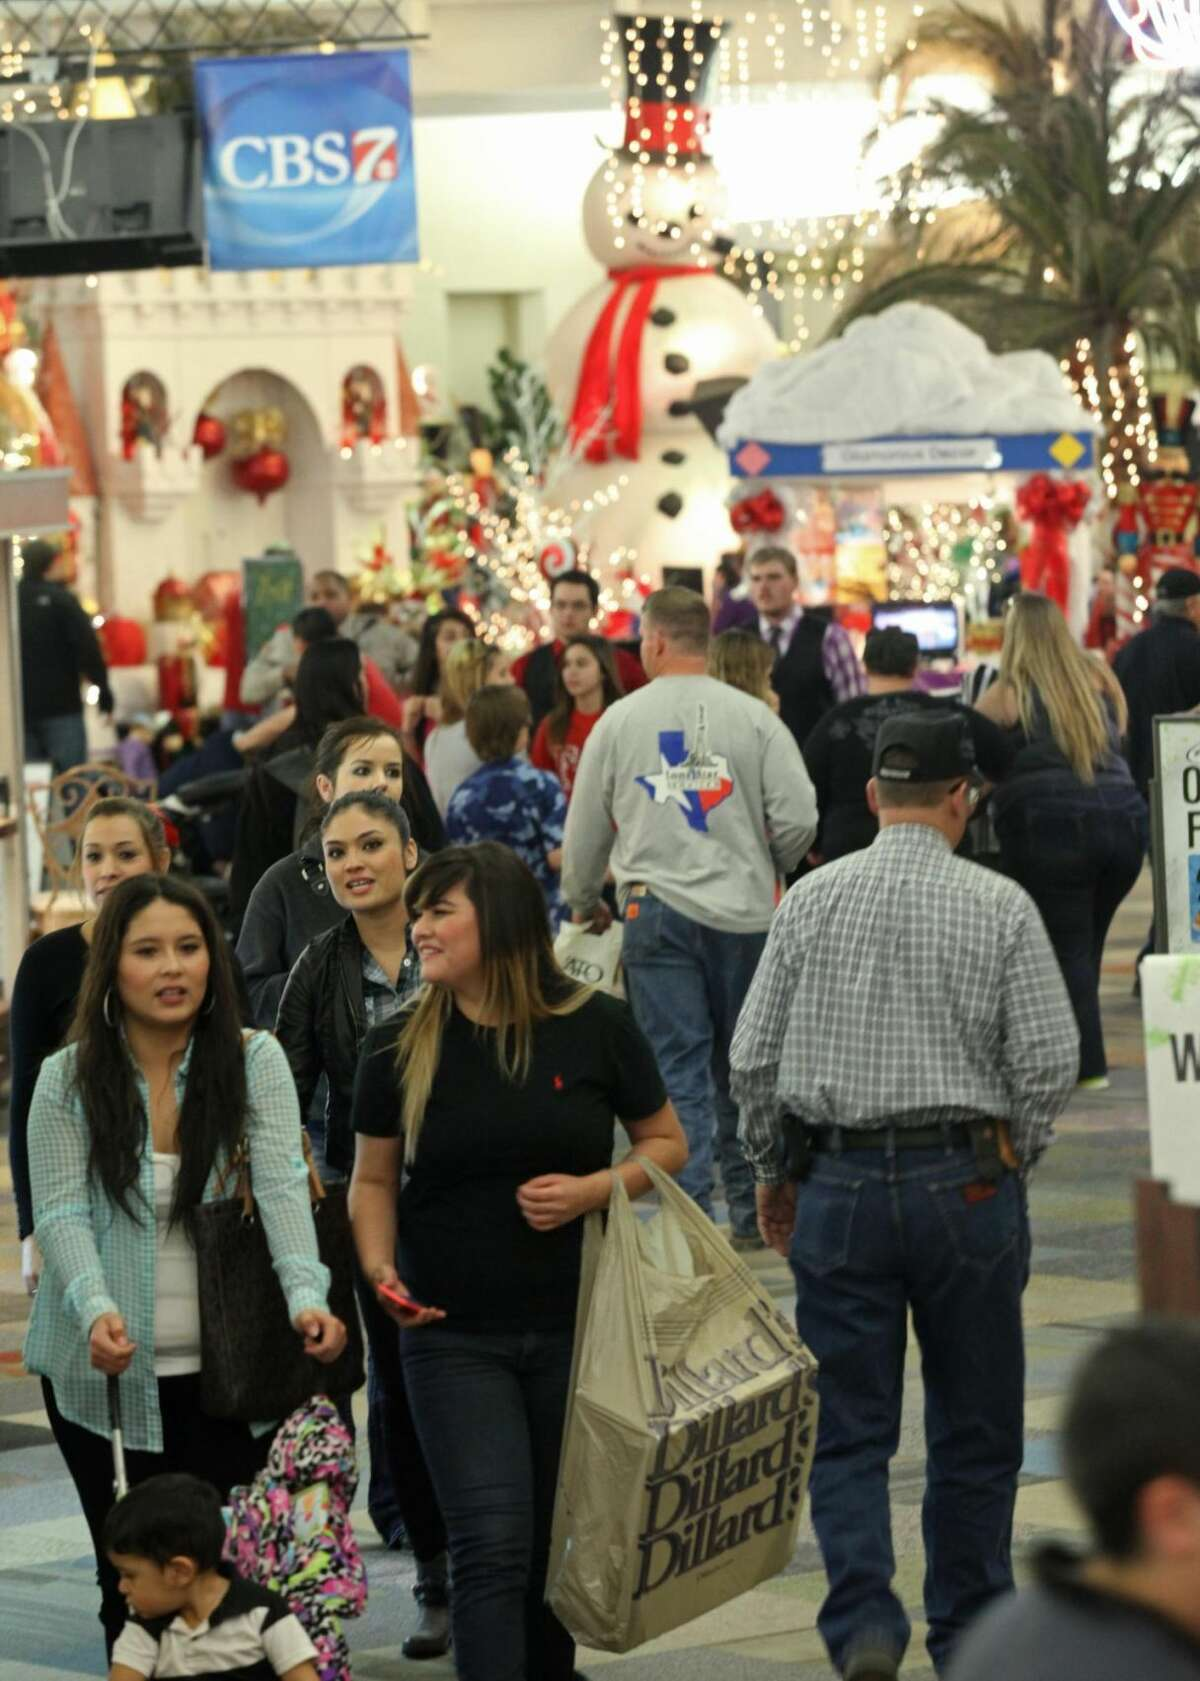 Last-minute shopping Diana Sanchez, left, and her sister-in-law Cassandra Cervantes talk while shopping at the Music City Mall in Odessa, Texas, on Monday, Dec. 23, 2013. The mall was packed with many shoppers with two days left before Christmas. (AP Photo/Odessa American, Ryan Evon)